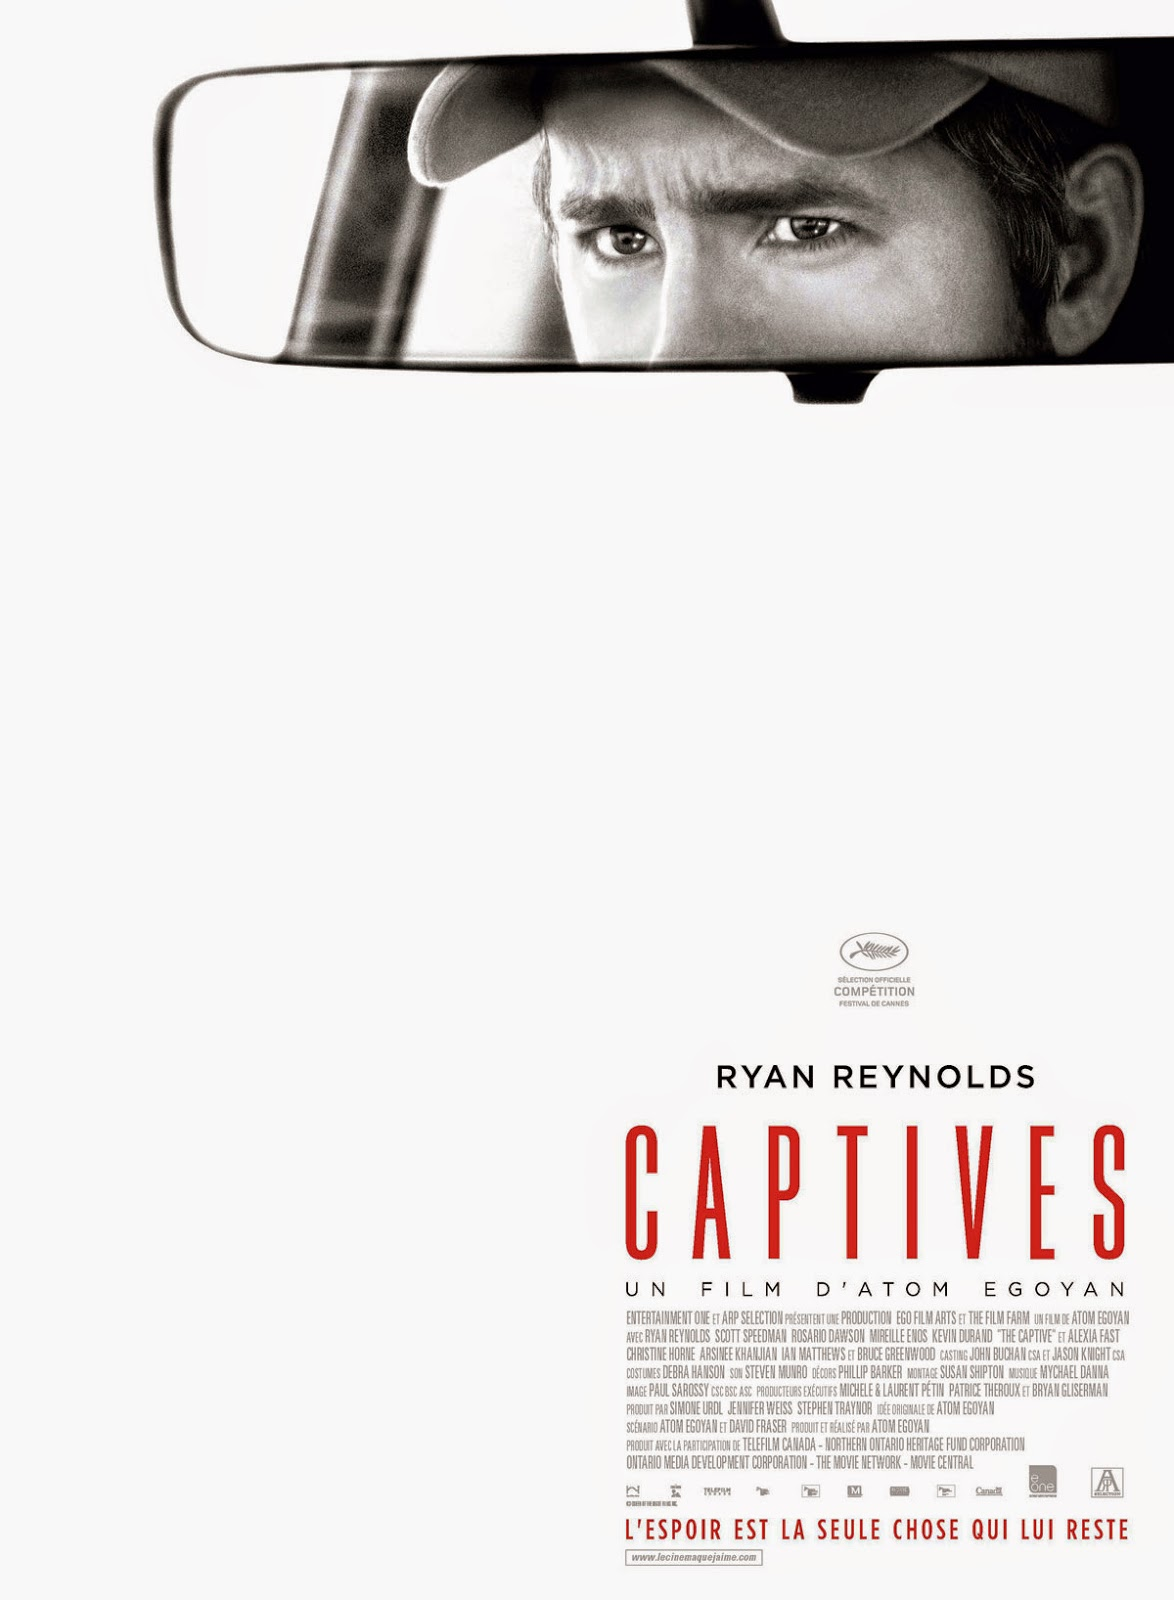 http://fuckingcinephiles.blogspot.fr/2015/01/critique-captives.html